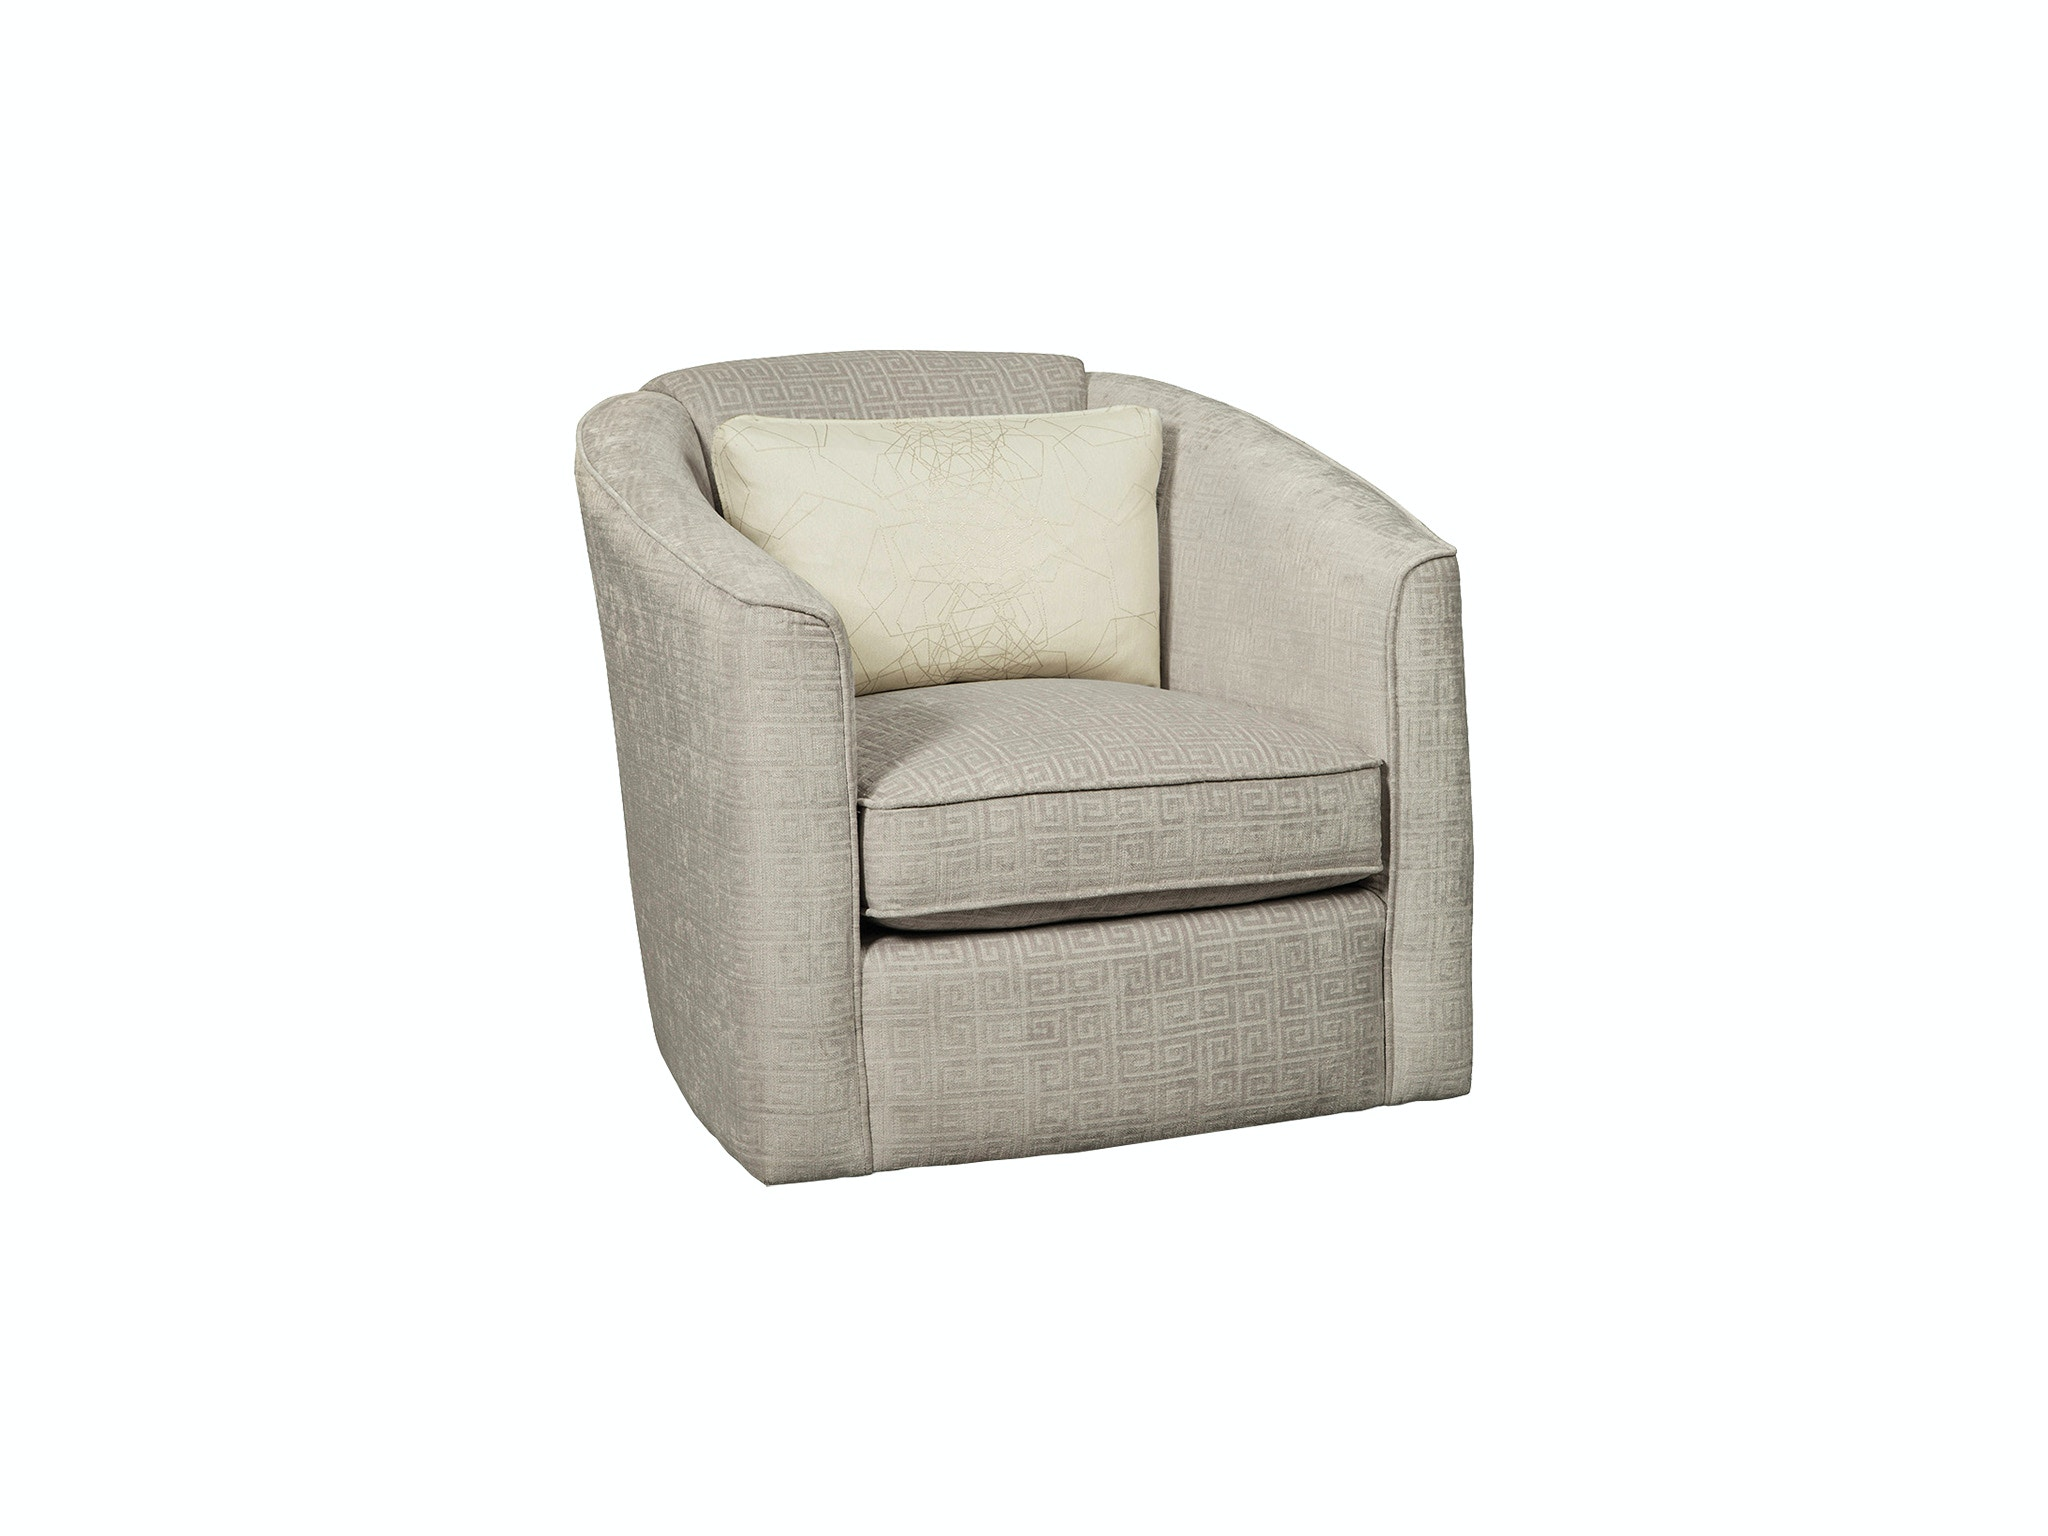 comfortable swivel chair room and board chairs rachael ray by craftmaster living r071810clsc at toms price furniture